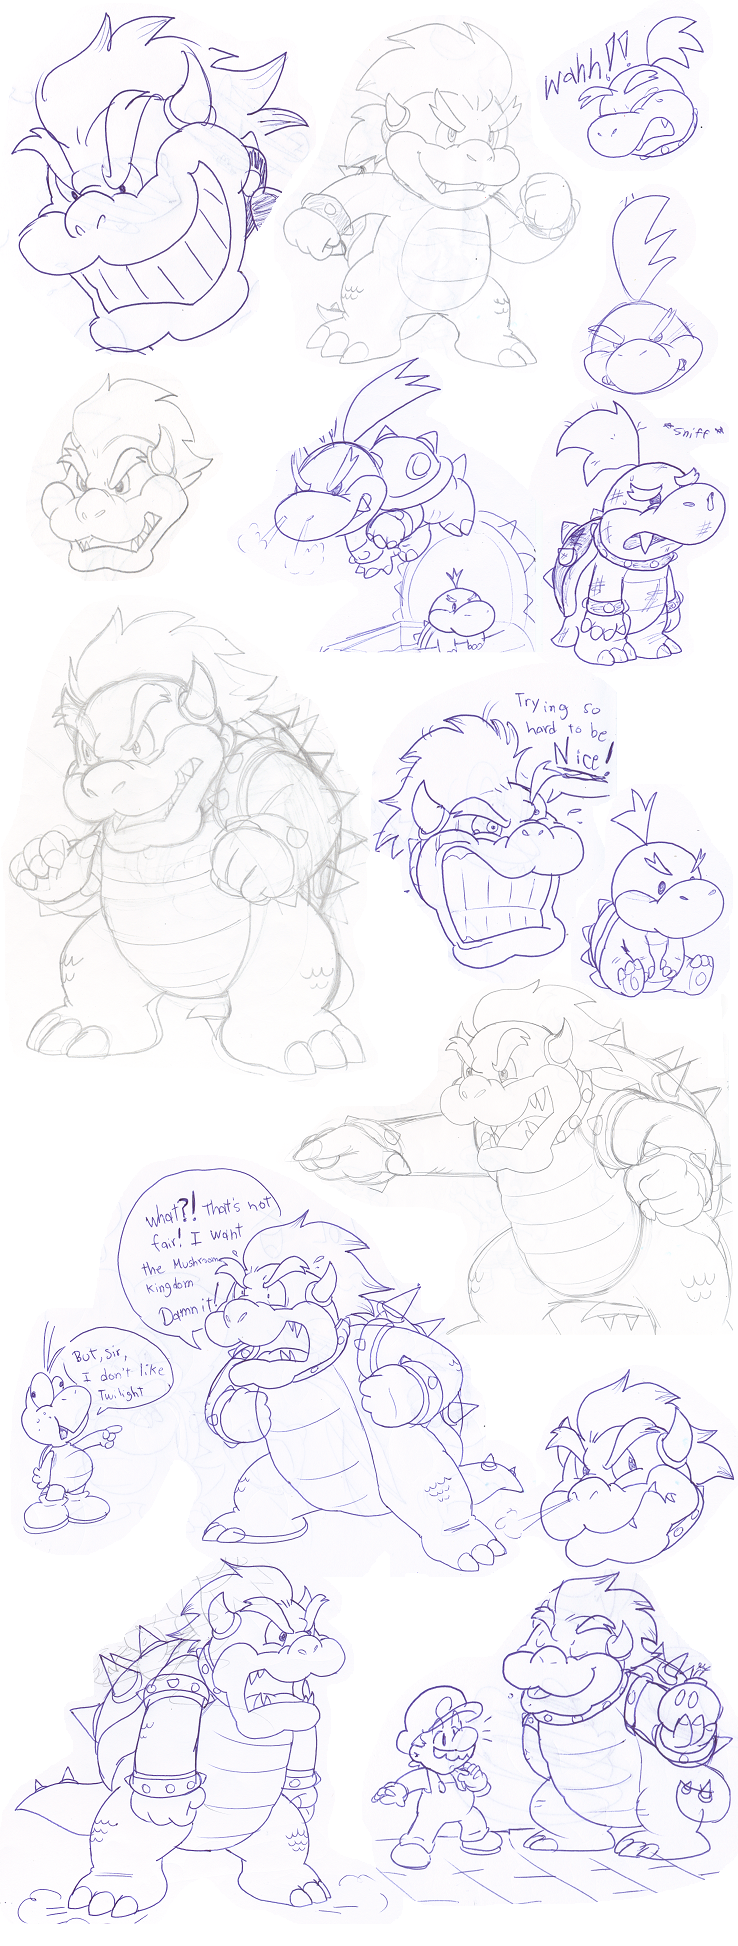 Doodles: Bowser by Nintendrawer